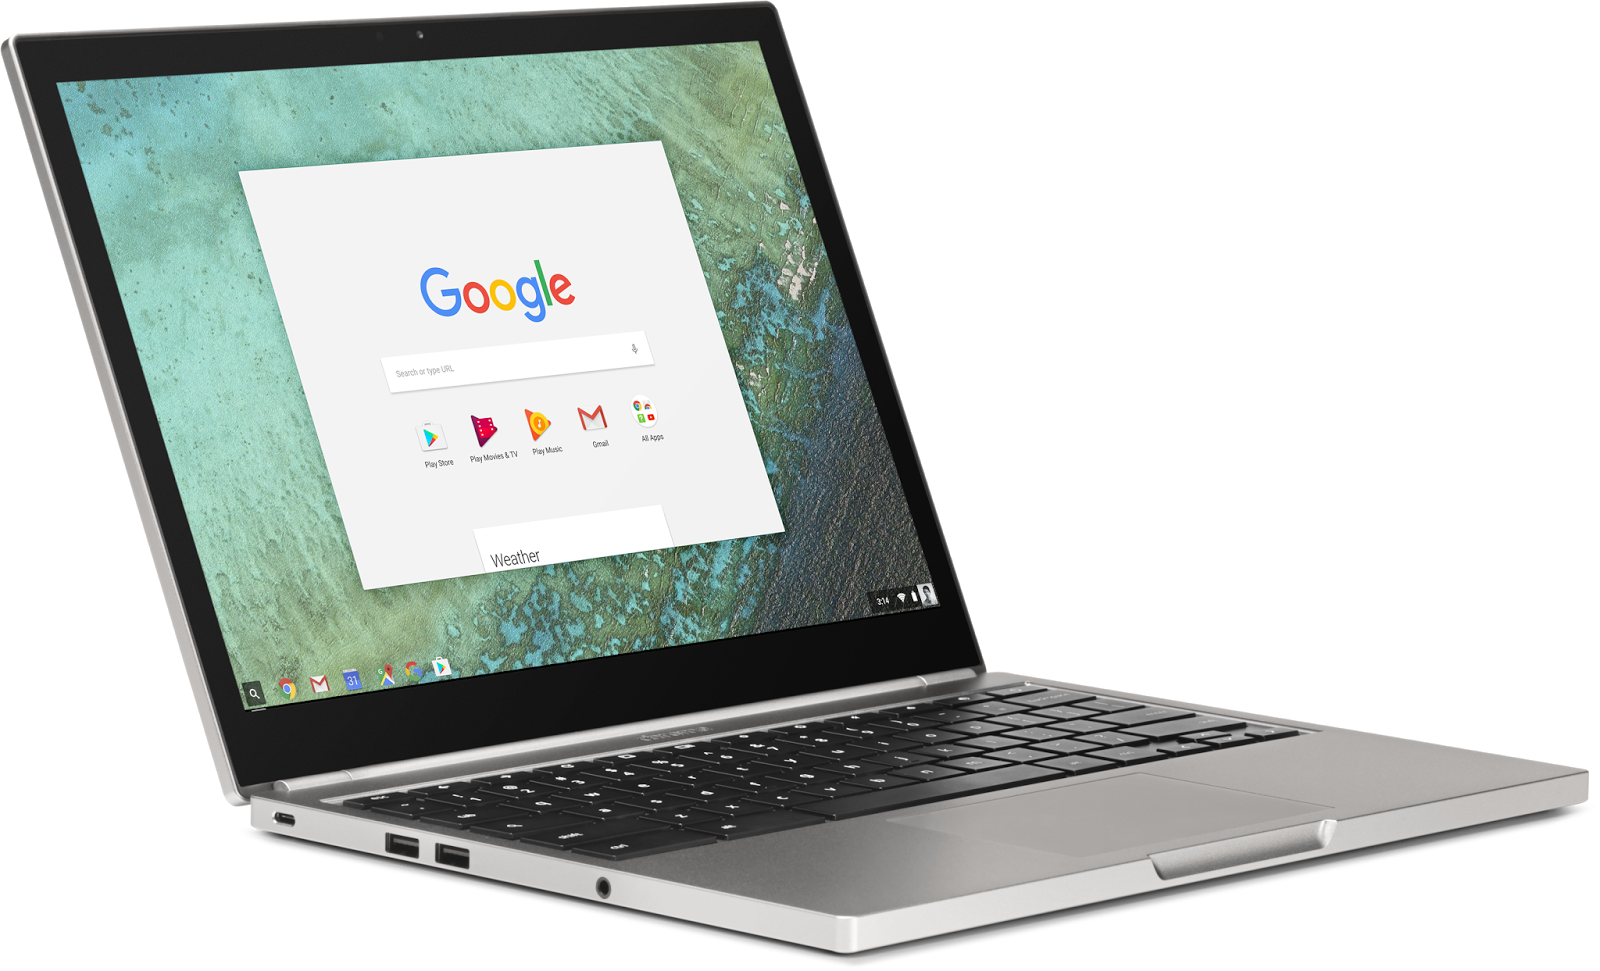 Android Developers Blog: Bring Your Android App to Chromebooks